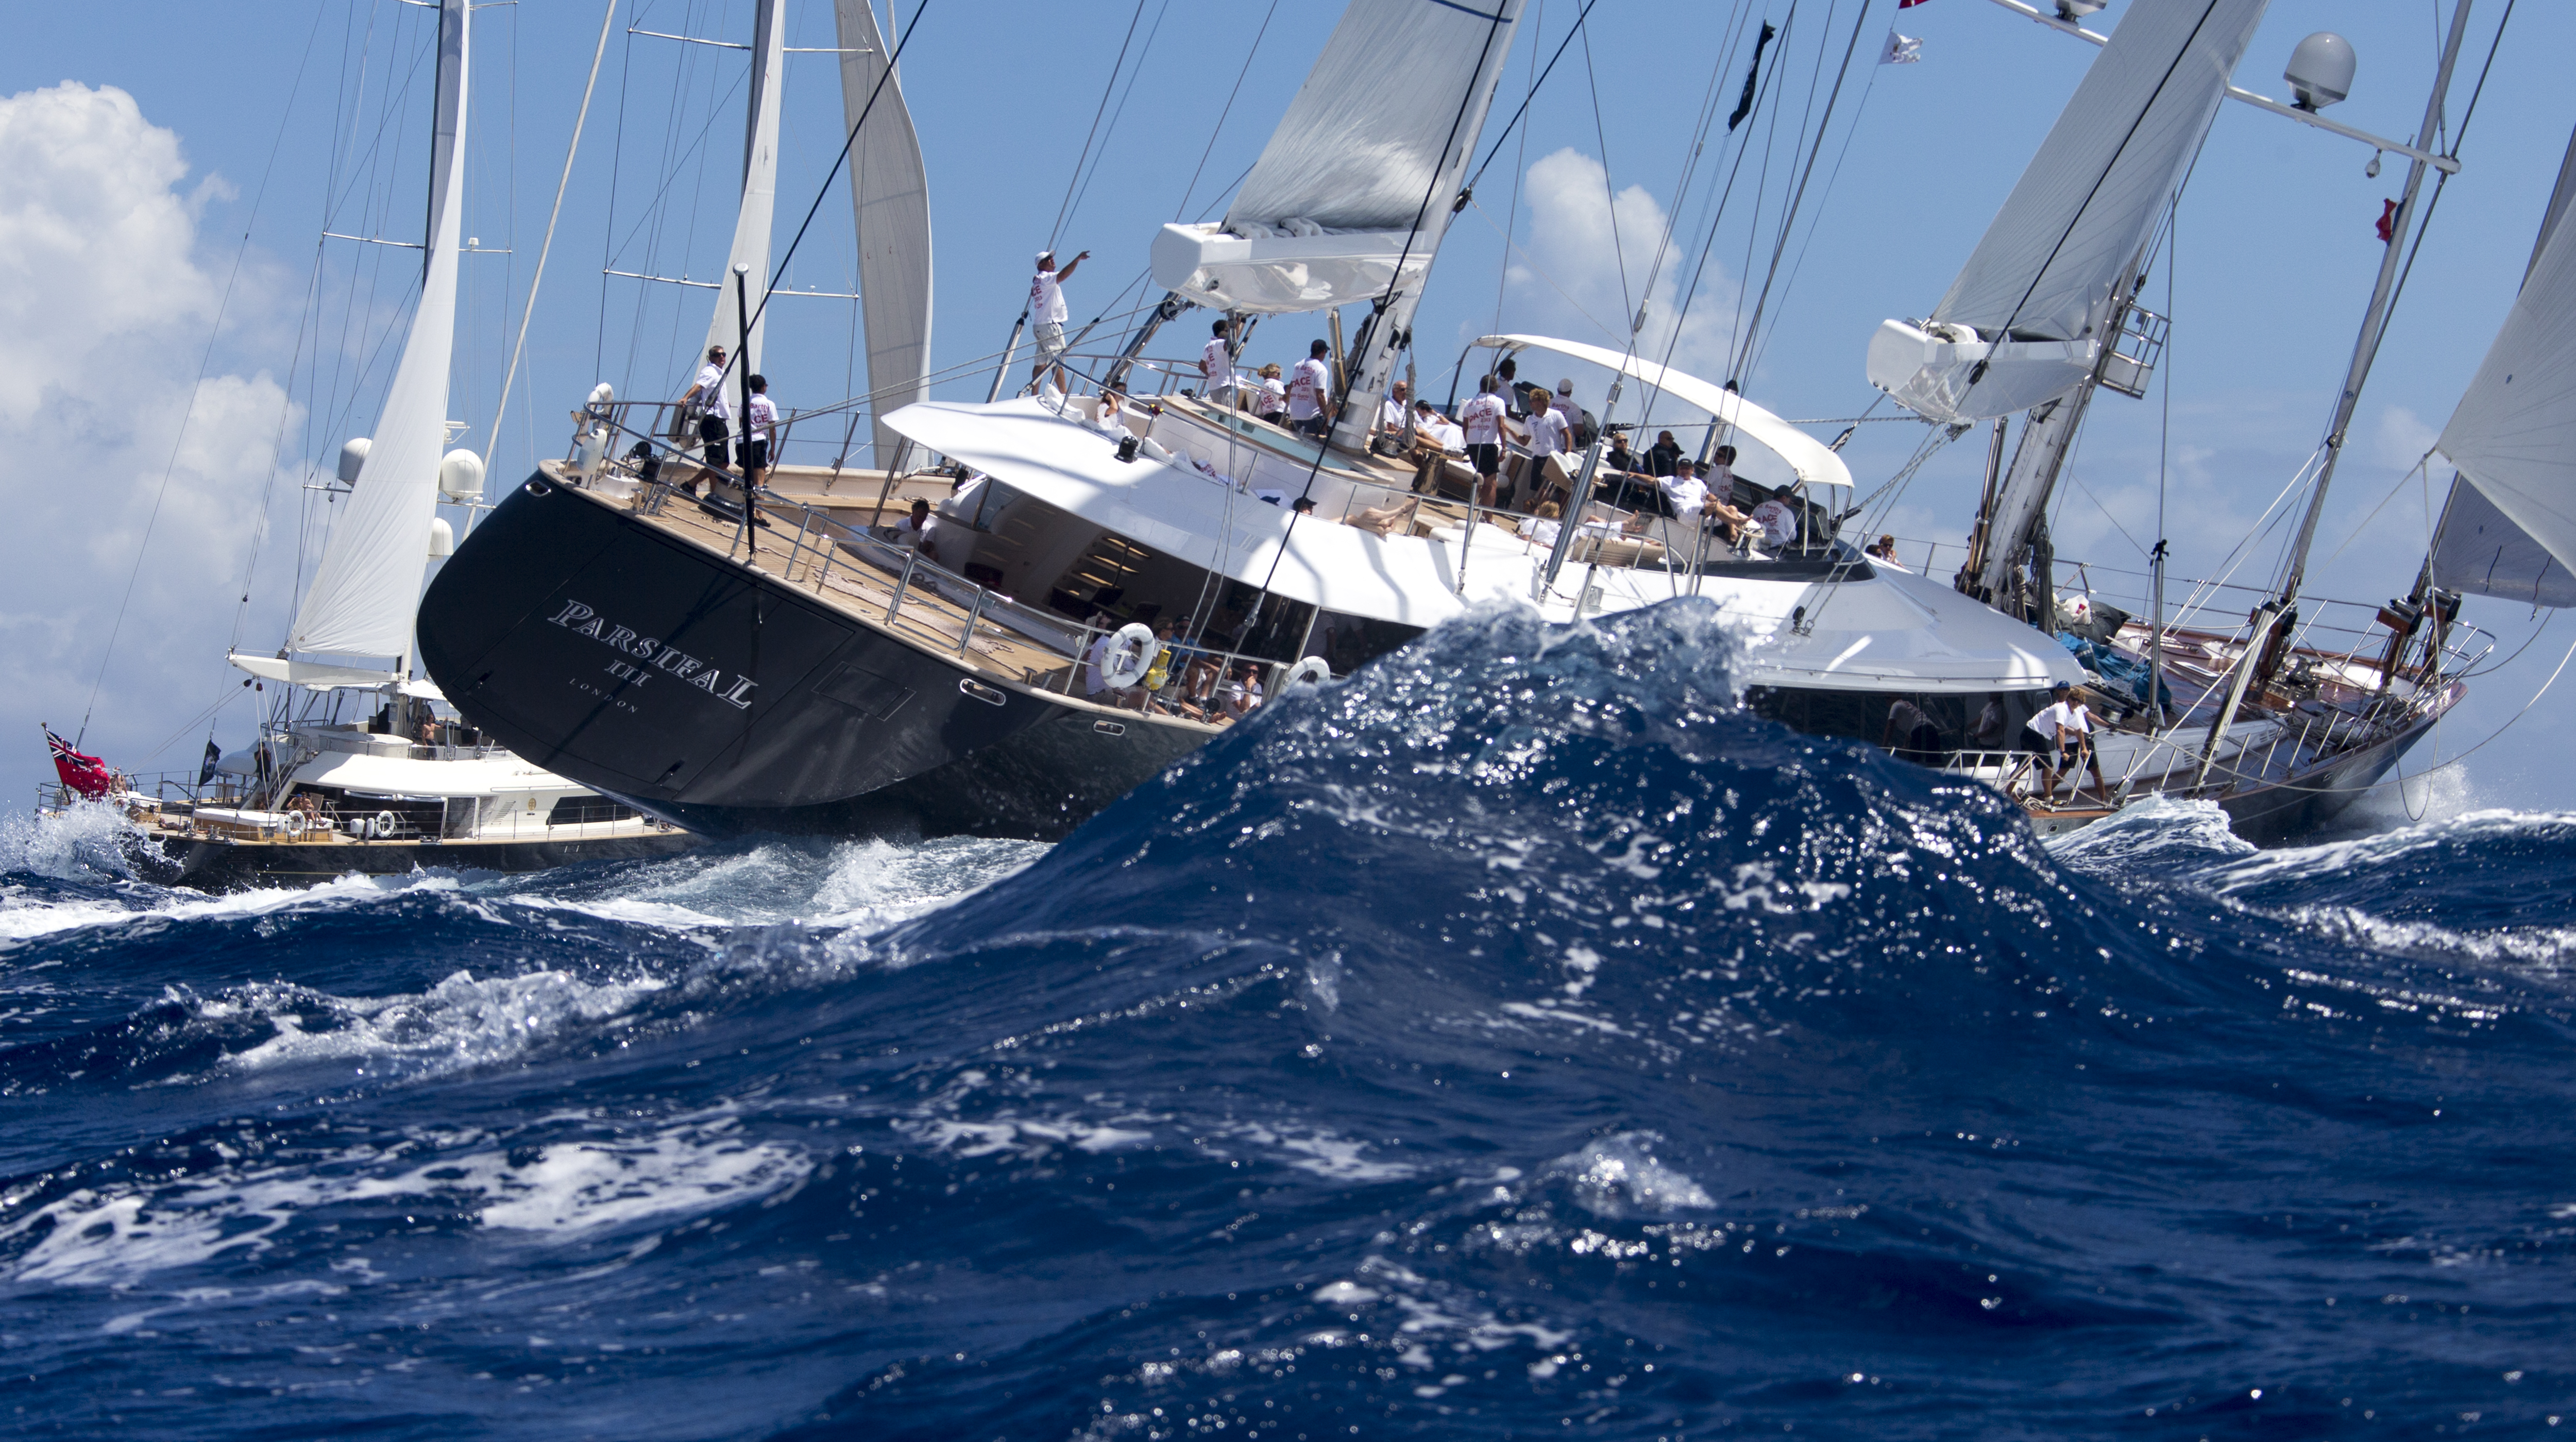 Yacht PARSIFALL races at the St Barth Bucket - Photo ©by Carlo Borlenghi